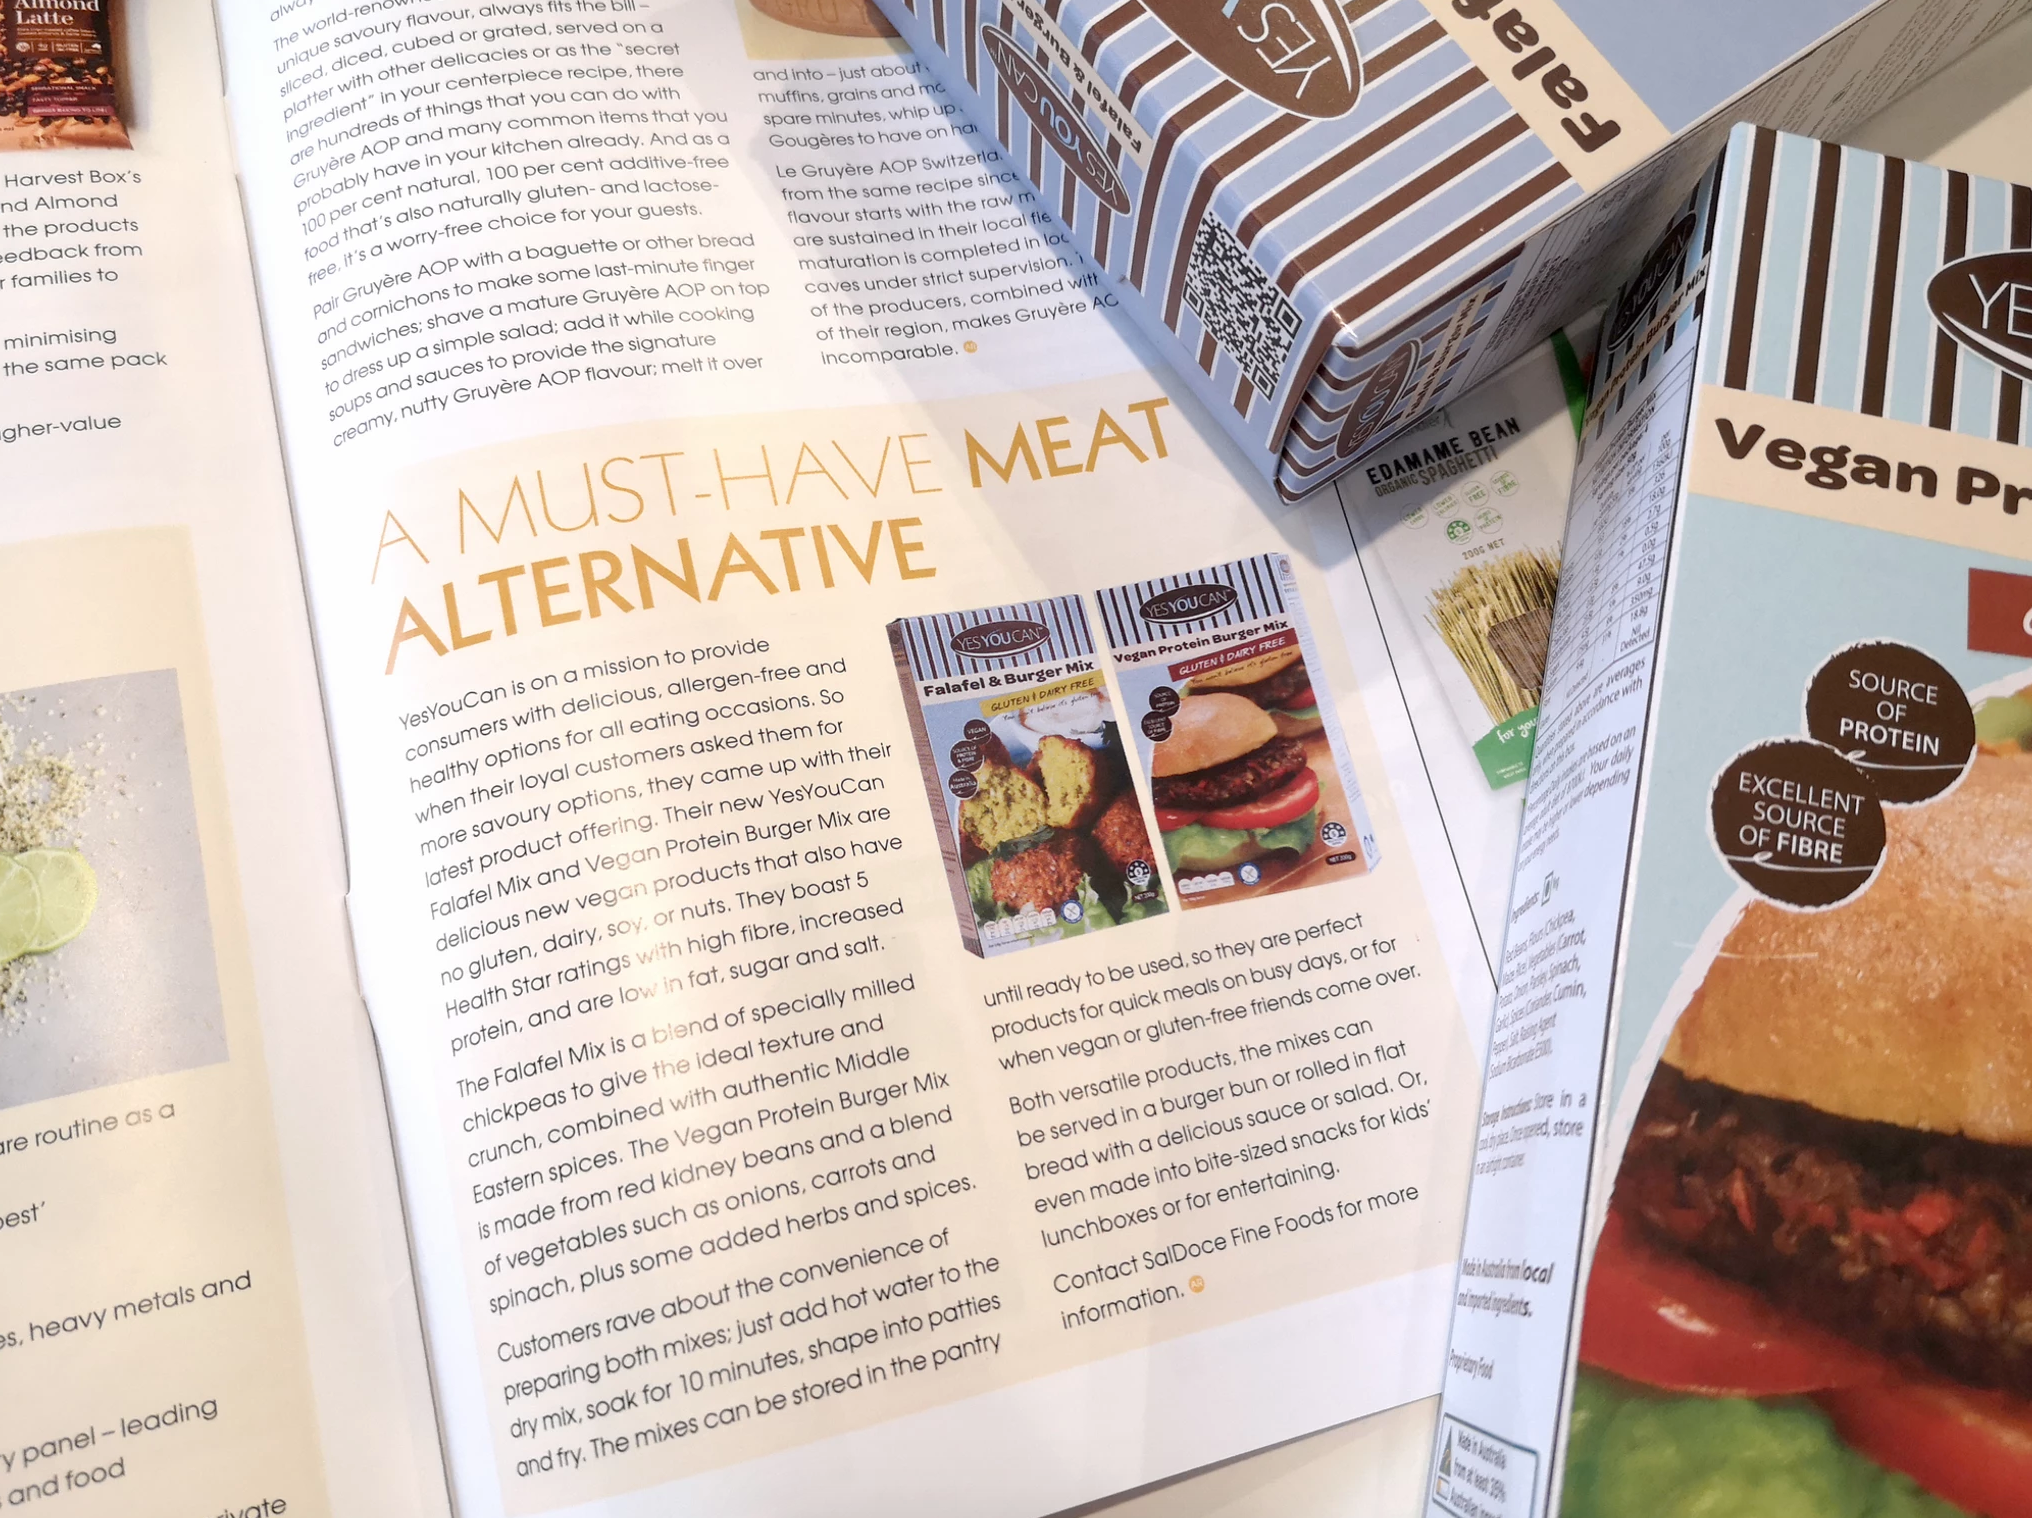 australian retailer burgers vegan yesyoucan gluten free october 2019 feature saldoce fine foods baking food